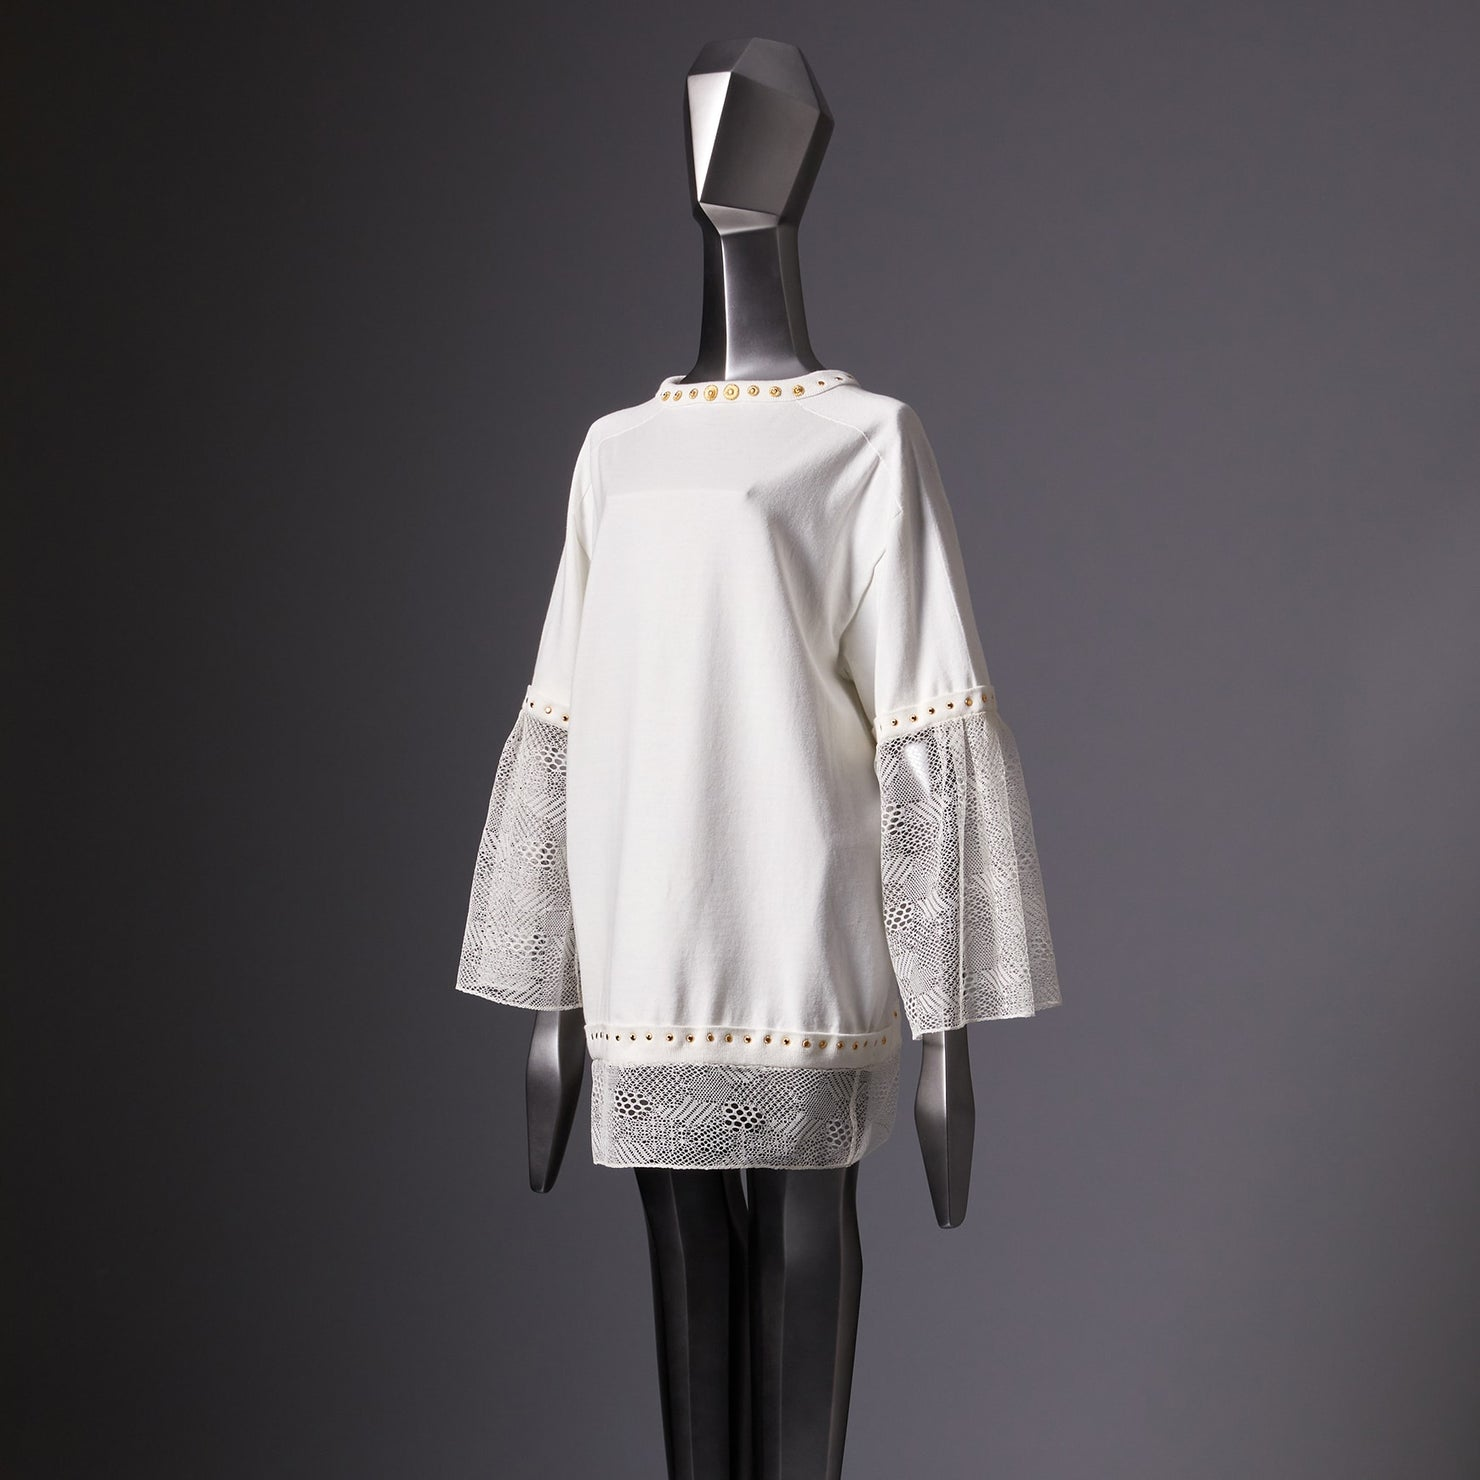 TYPE-1 Knit Organic Cotton Half Sleeves with French Lace Sleeve Parts Long and Gold Washer(White Cells)